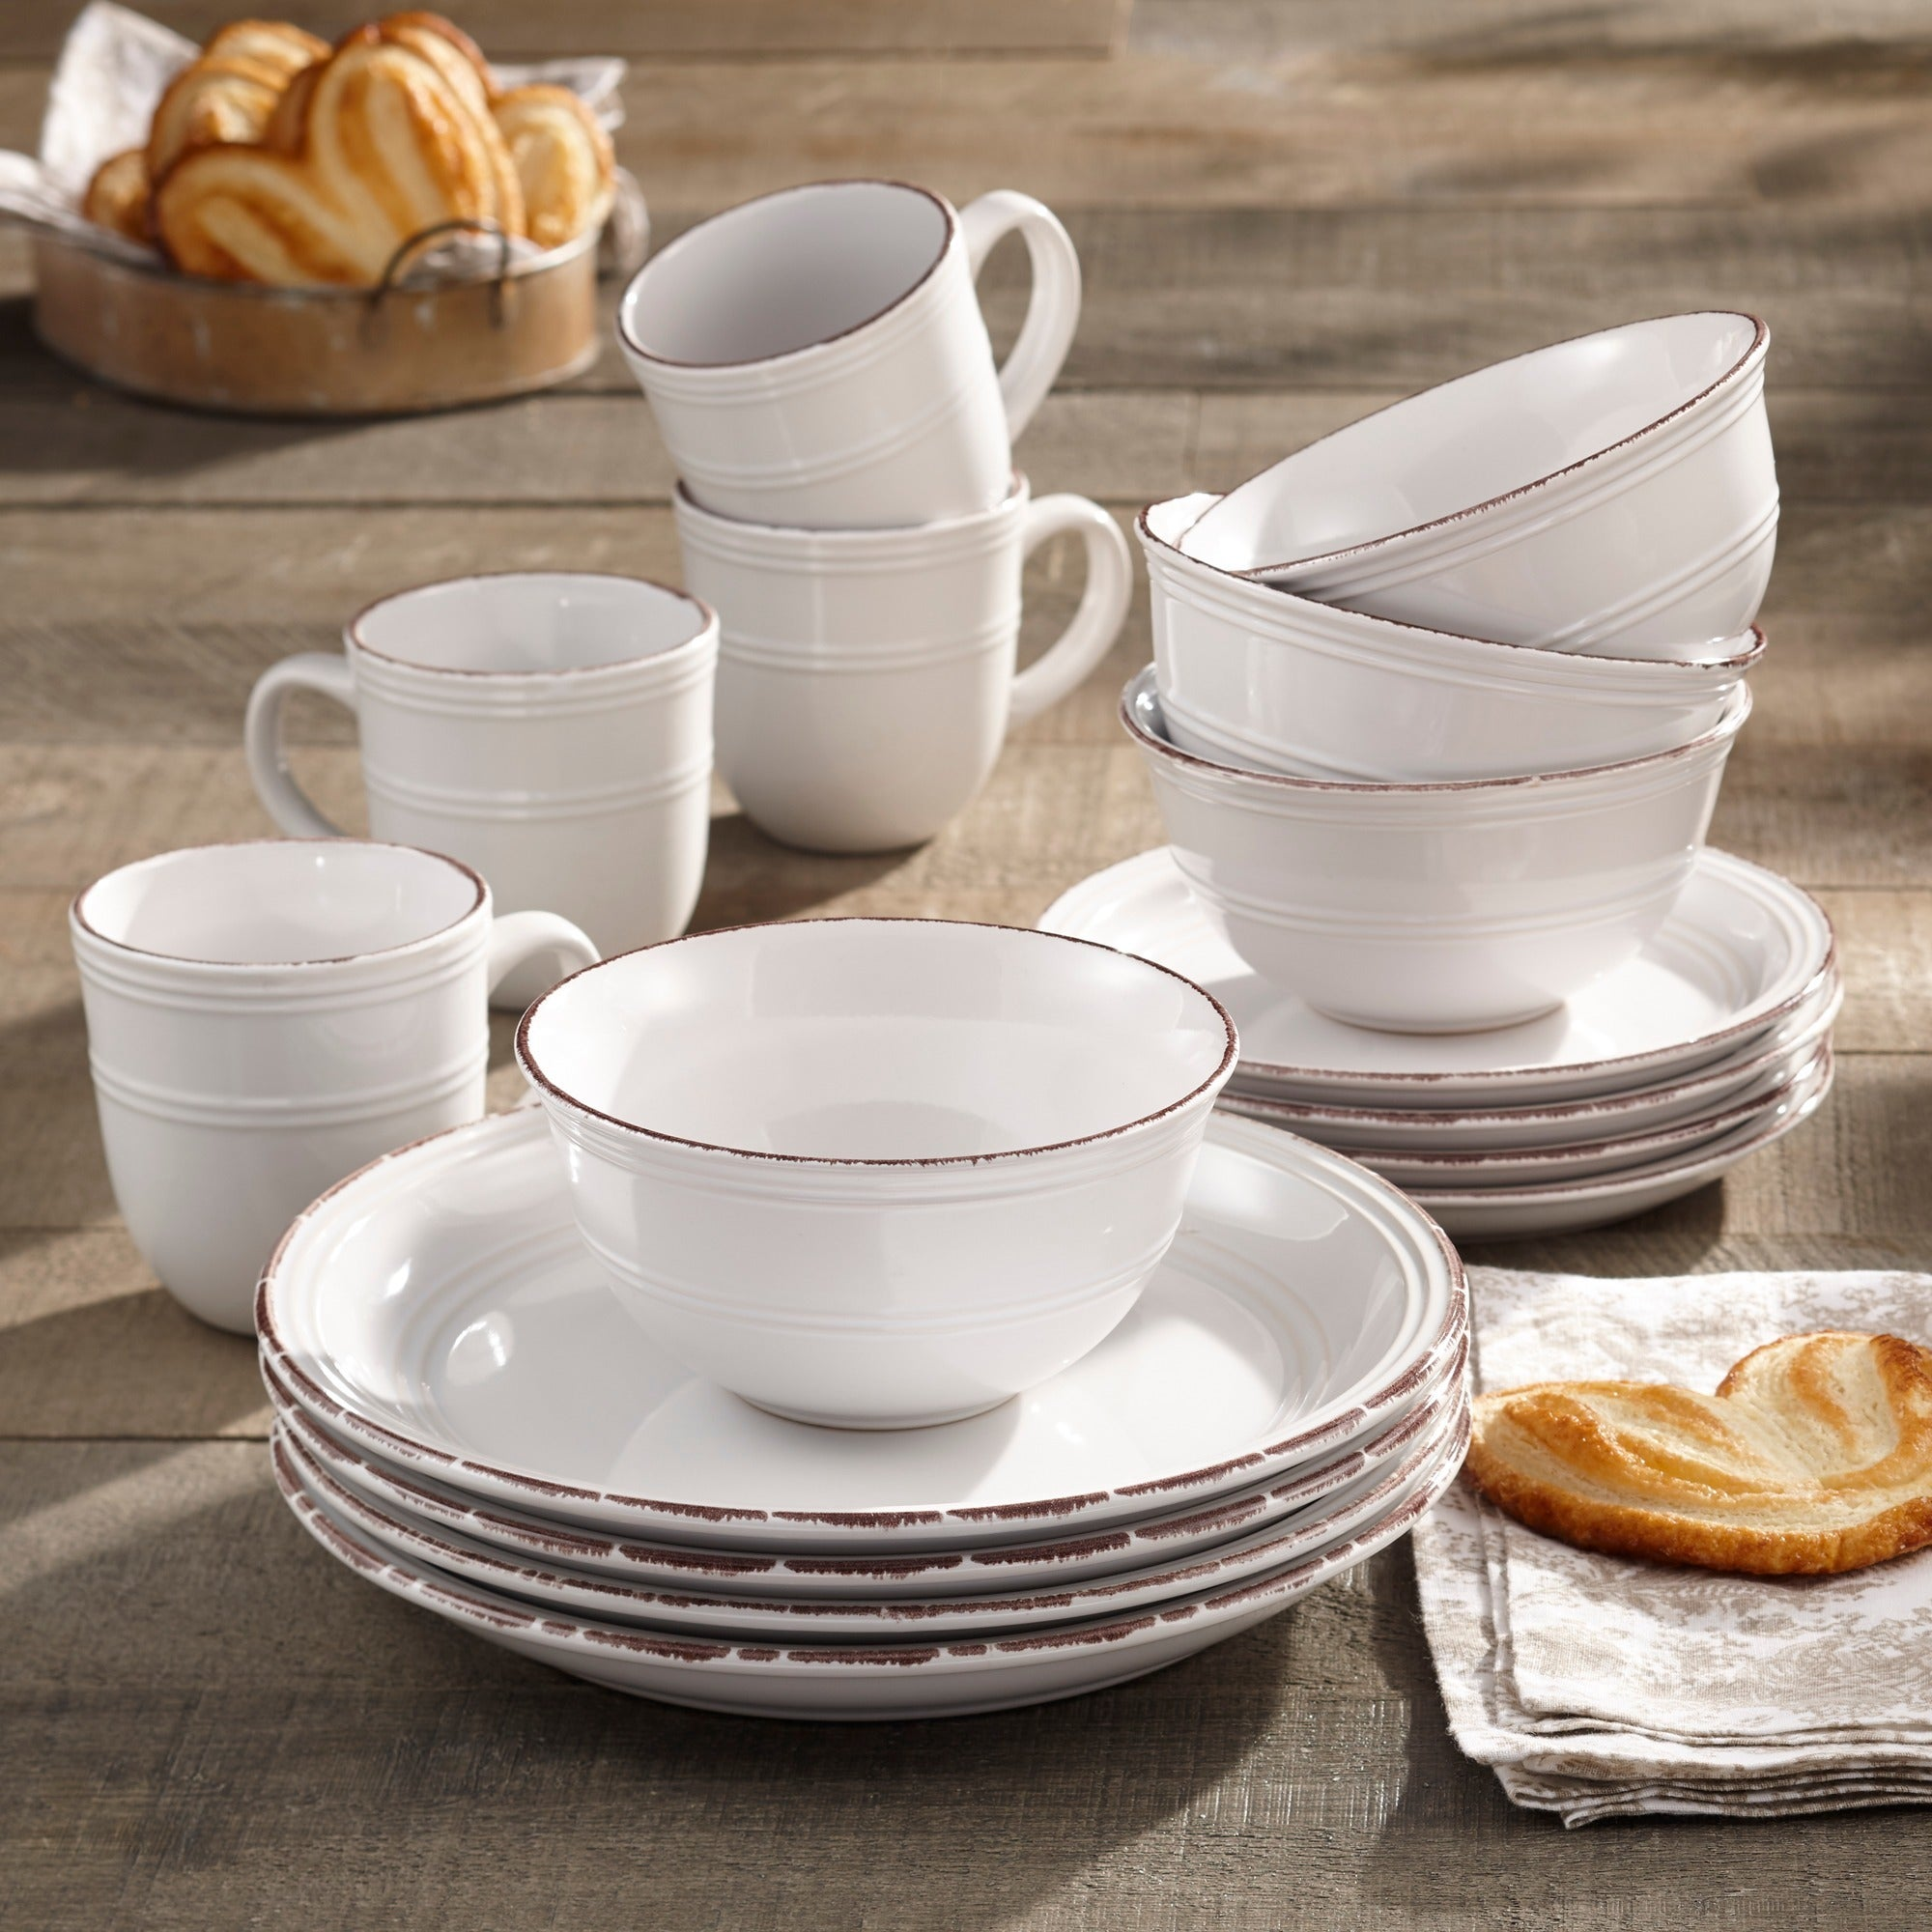 American Atelier Madelyn White Earthenware 16-piece Dinnerware Set - Free Shipping Today - Overstock.com - 18894081 & American Atelier Madelyn White Earthenware 16-piece Dinnerware Set ...